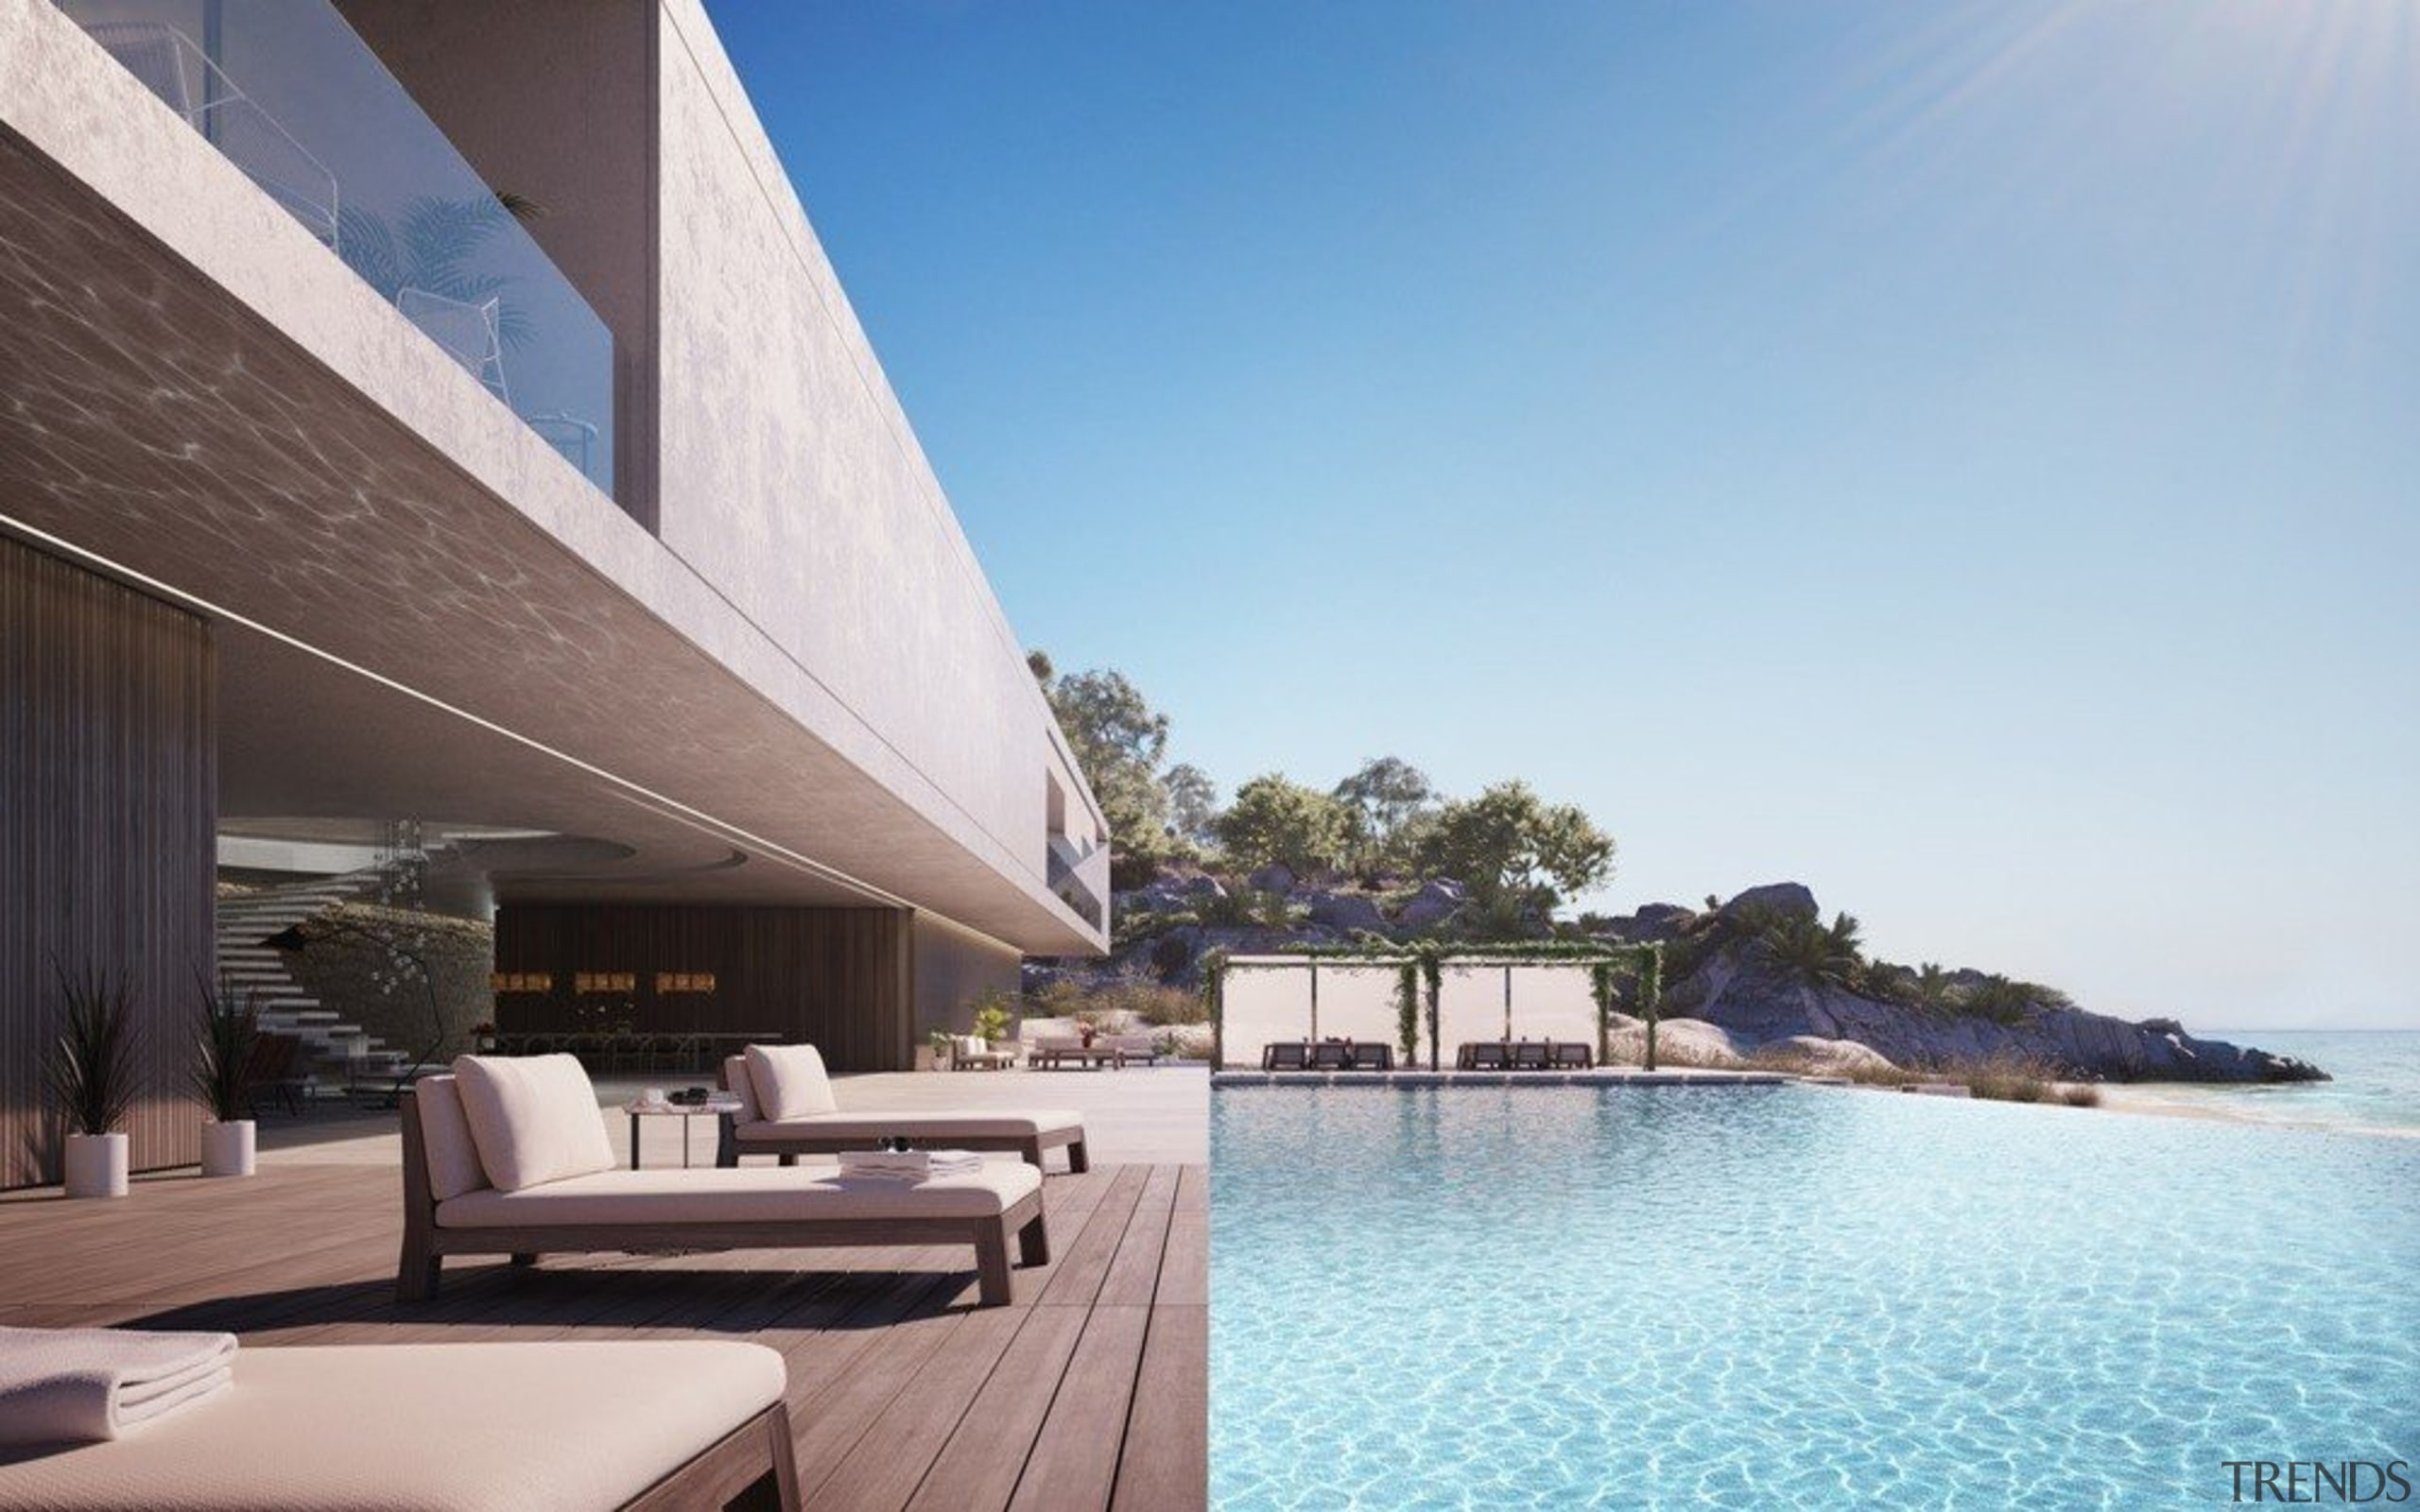 See more images of this home apartment, architecture, condominium, estate, house, property, real estate, swimming pool, gray, white